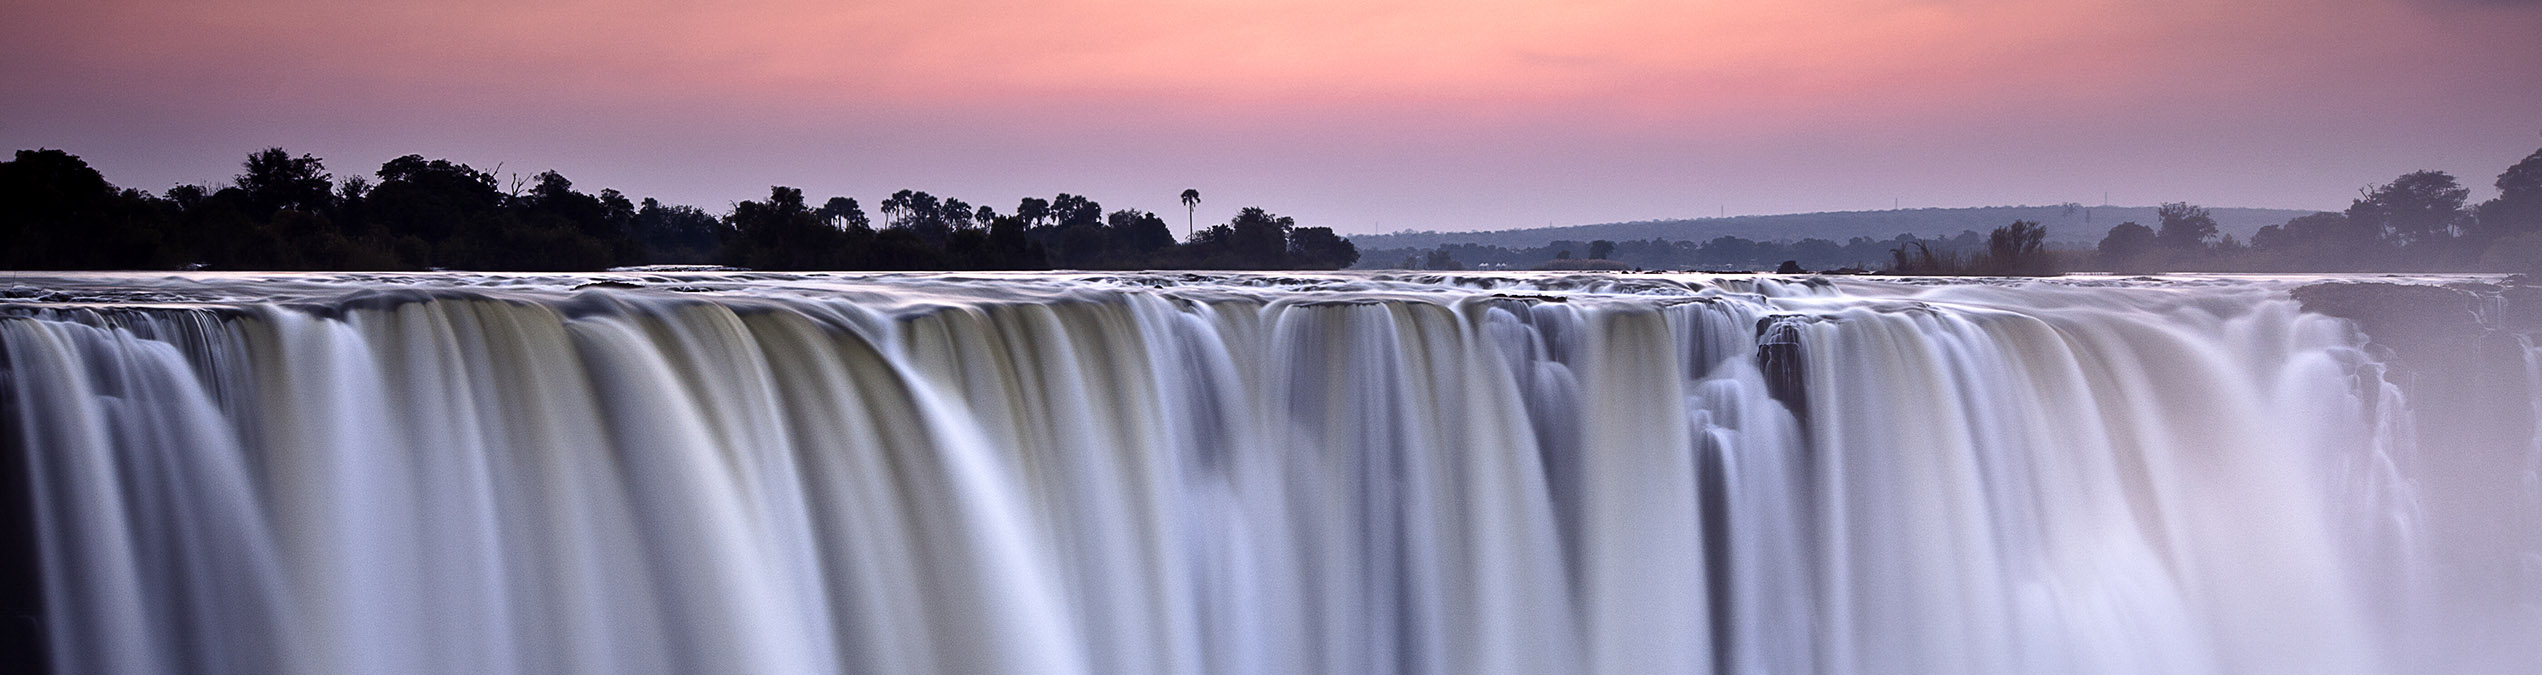 Safari Club - Zambia_Victoria_Falls_morning_light